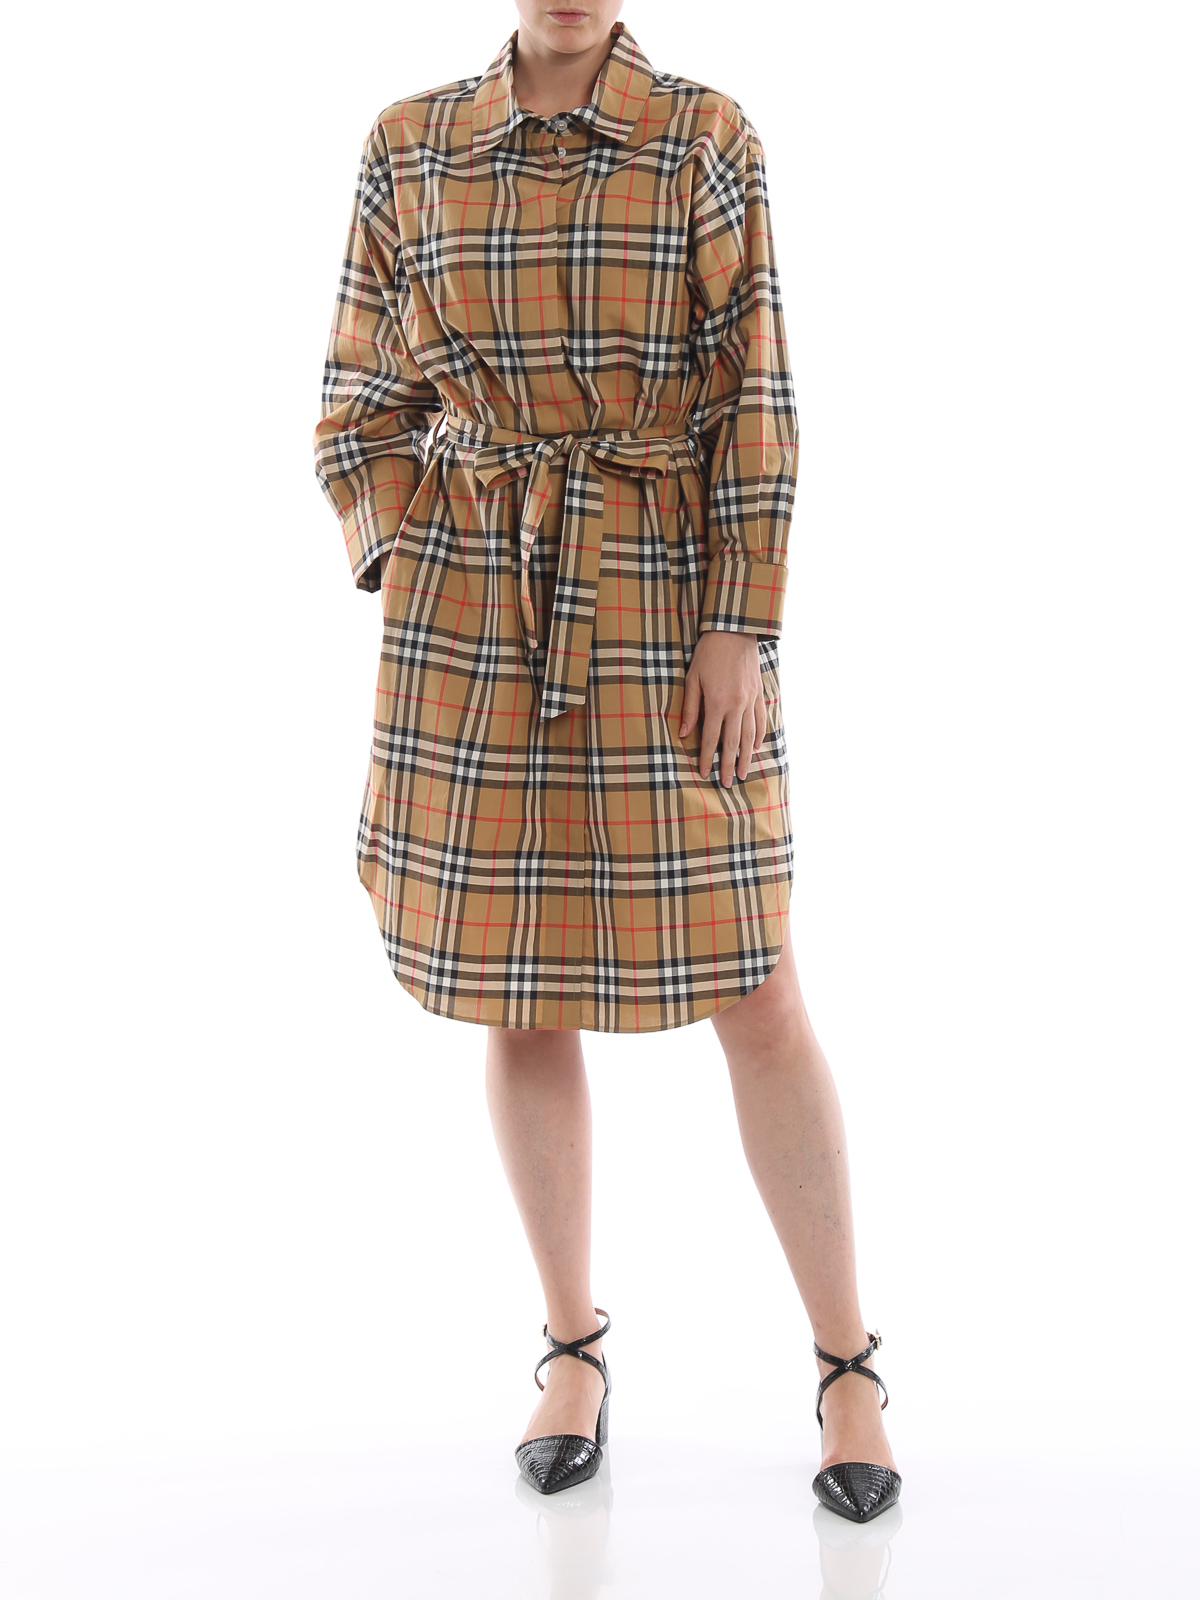 5b59d5dad652 BURBERRY  knee length dresses online - Isotto vintage check cotton shirt  dress